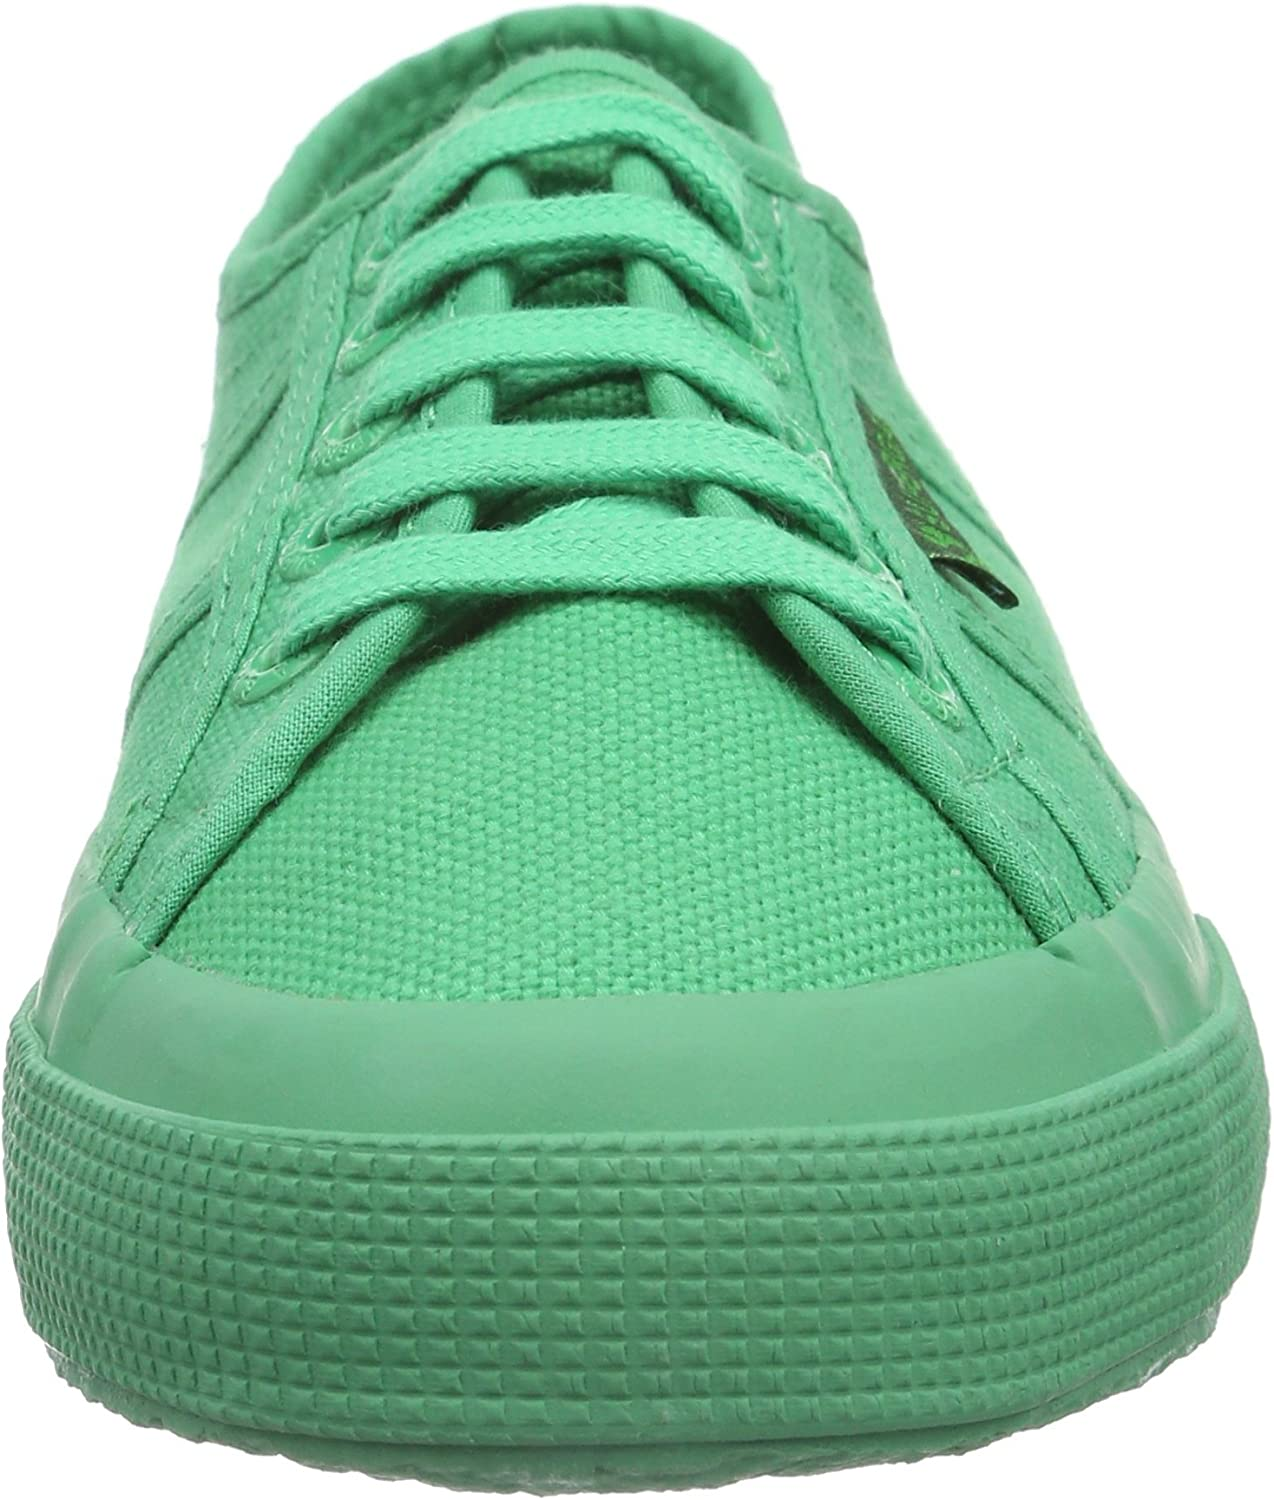 Superga Men's Low Trainers Green (A03)